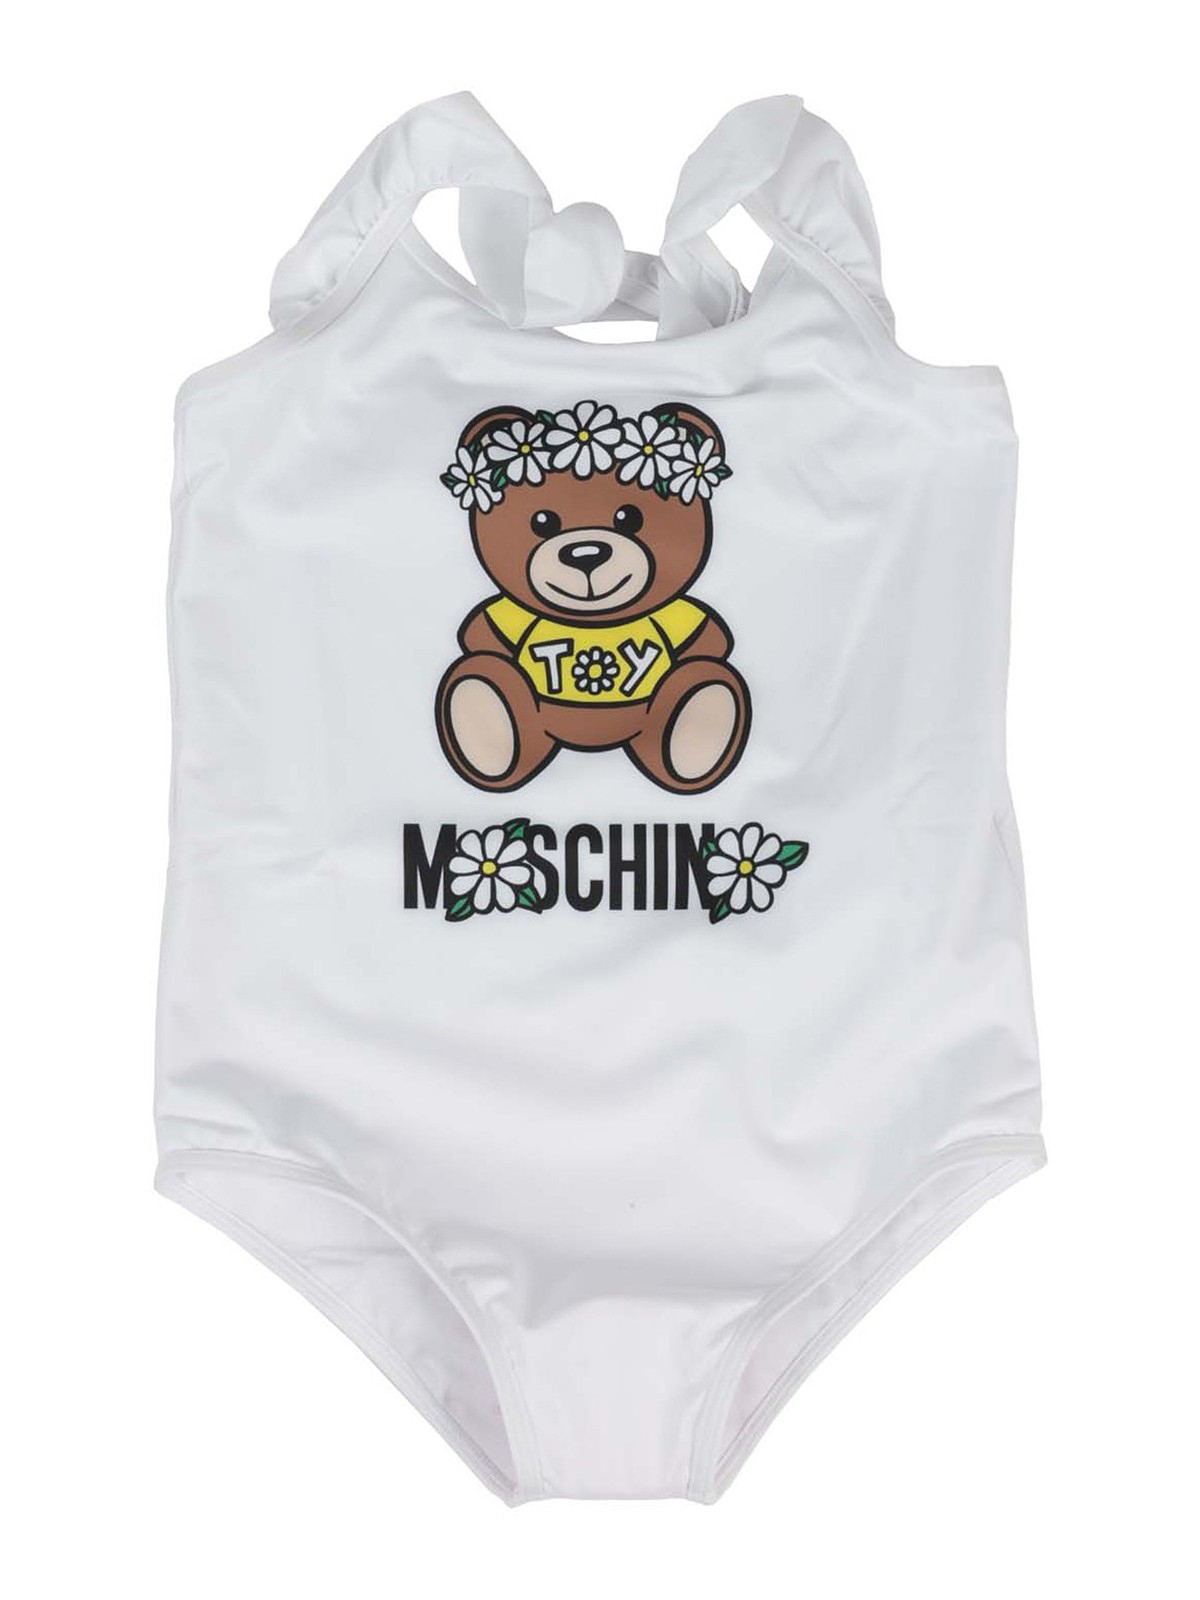 Moschino One-pieces DAISY TEDDY BEAR SWIMSUIT